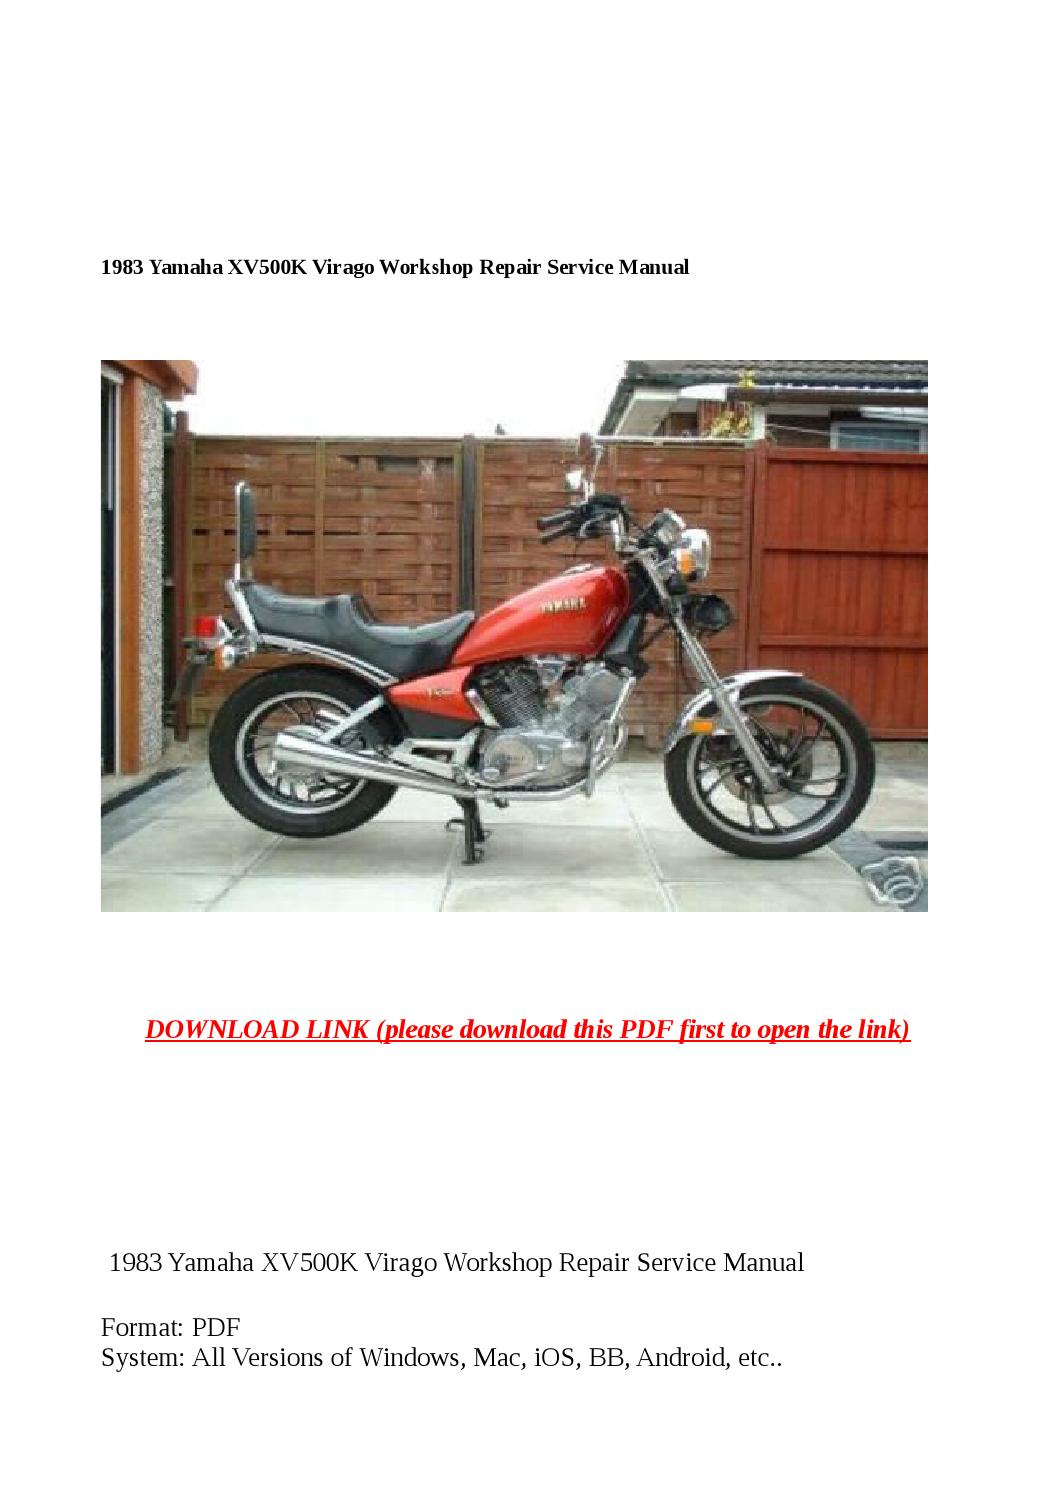 Virago 920 Wiring Diagram Free Download Wiring Diagram Schematic